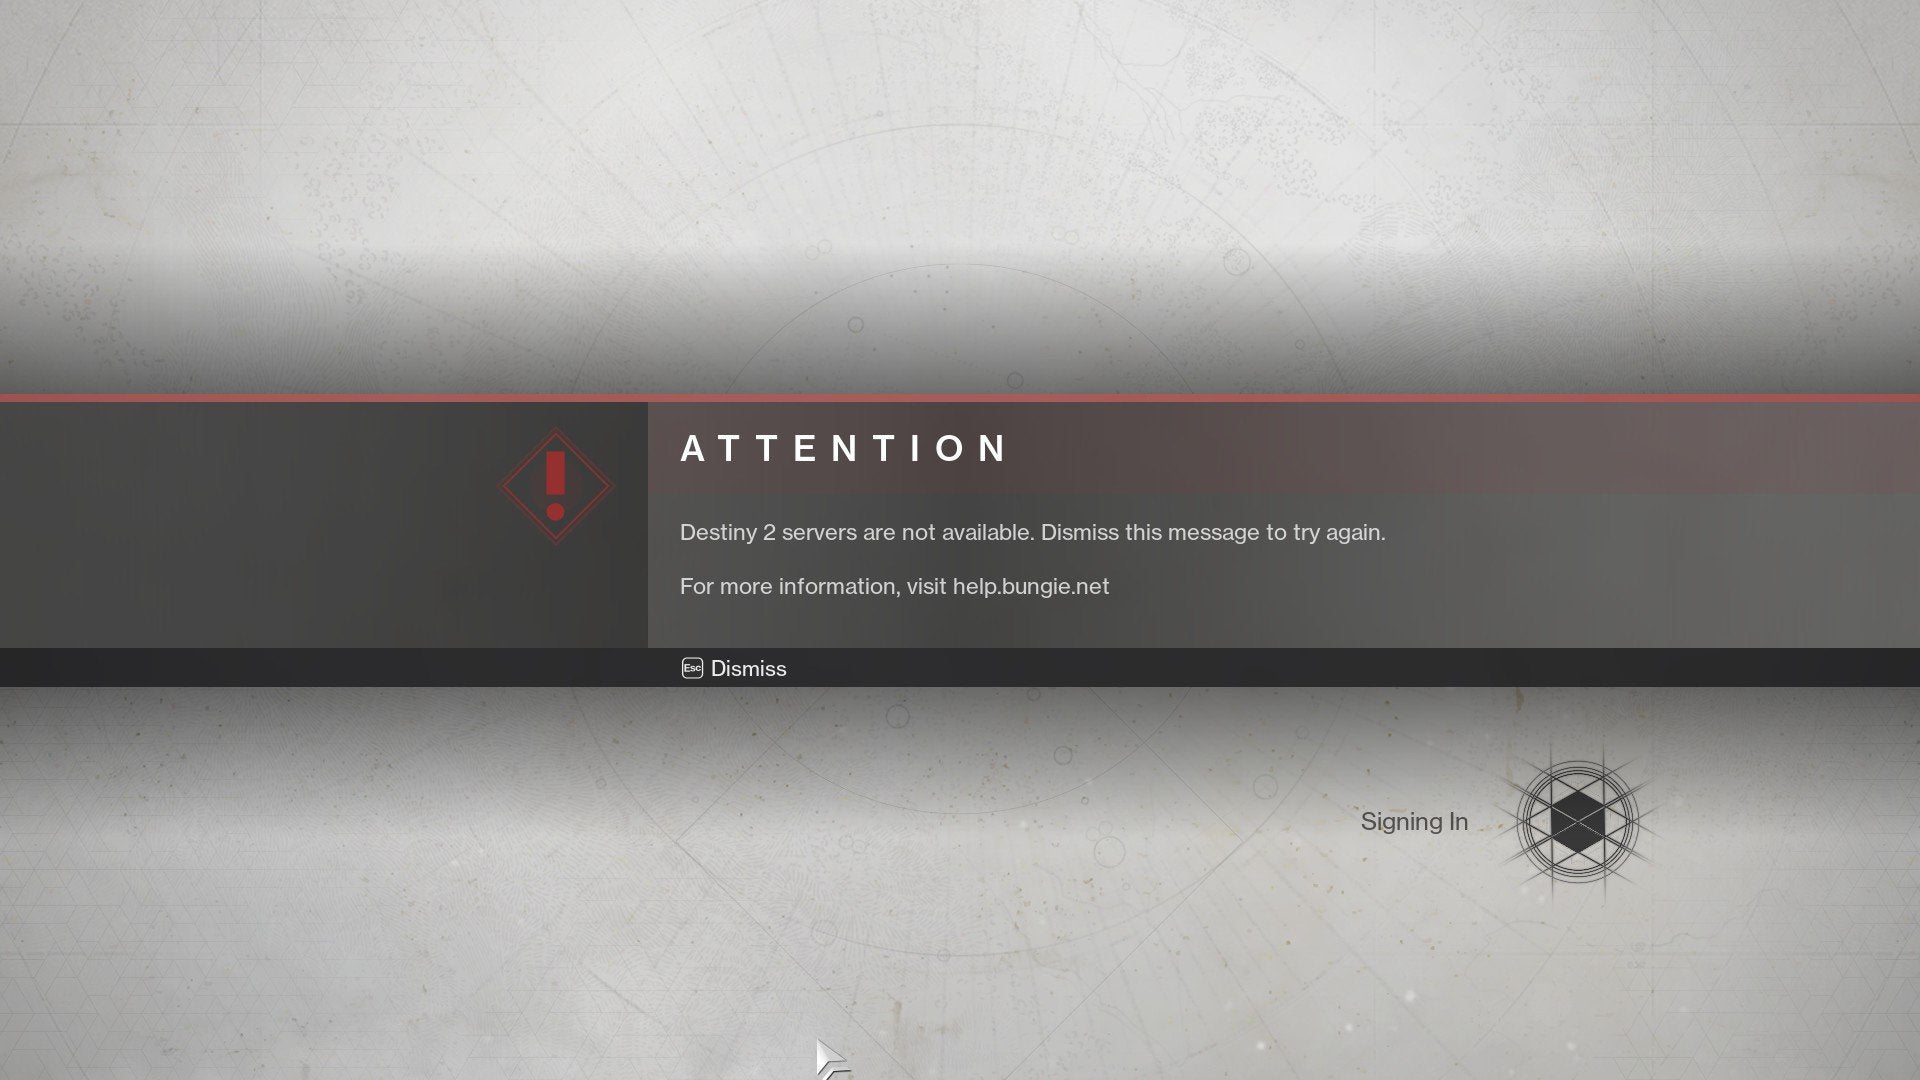 Destiny 2 Servers are not available